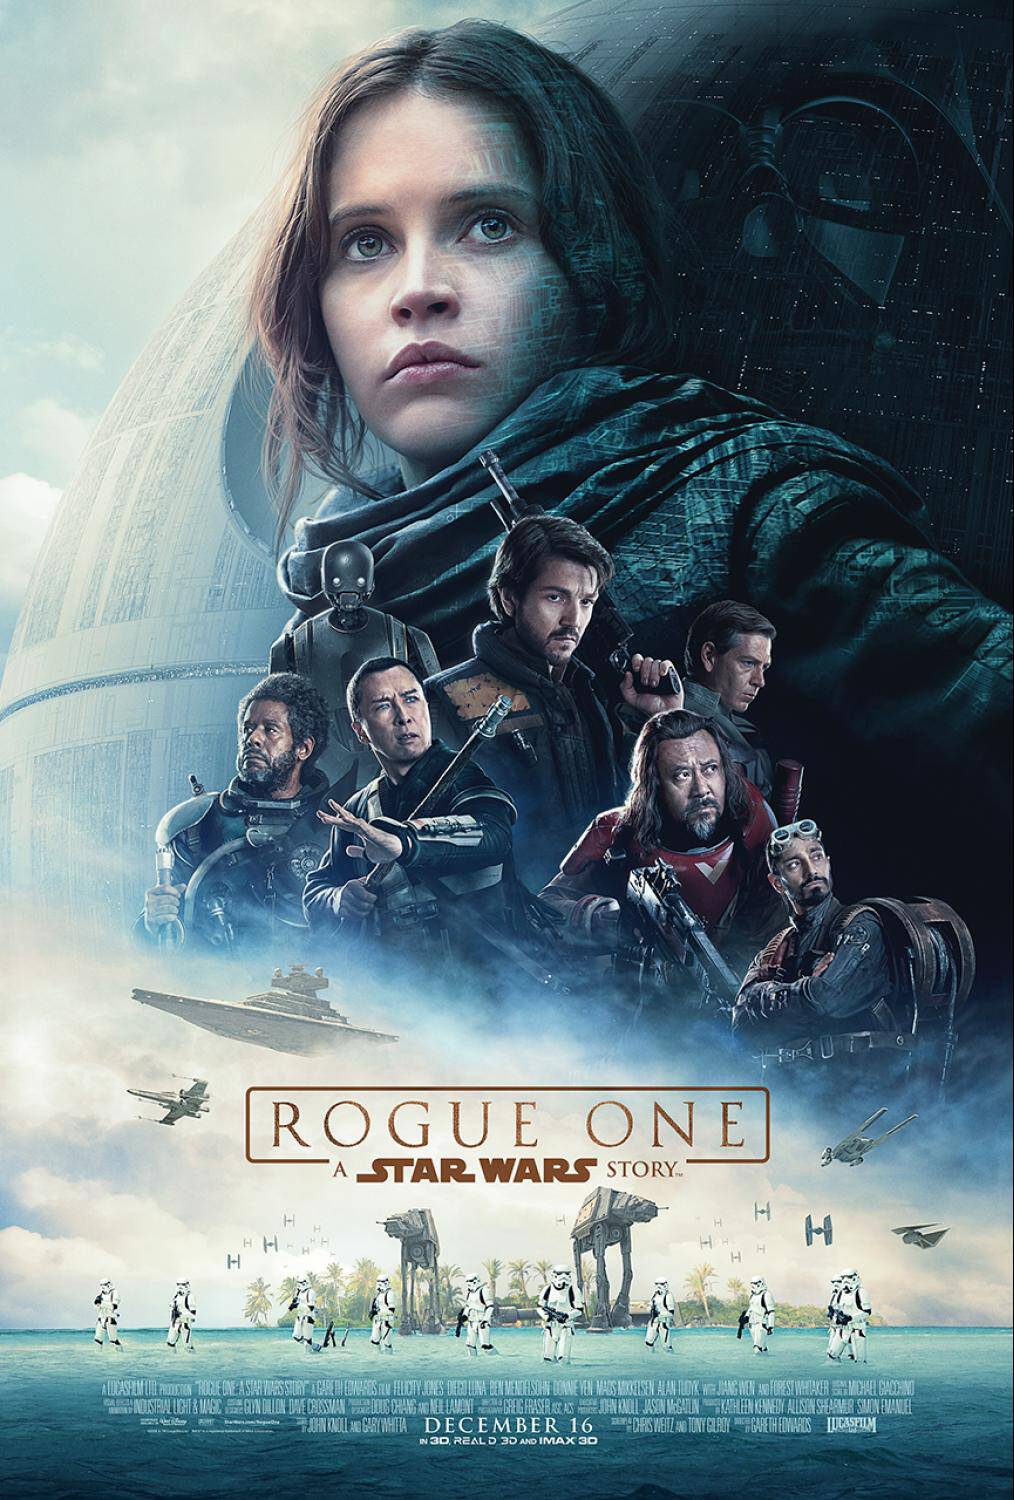 Woot! It's here! Check out the amazing new ROGUE ONE: A STAR WARS STORY trailer. ROGUE ONE hits theaters December 16, 2016!